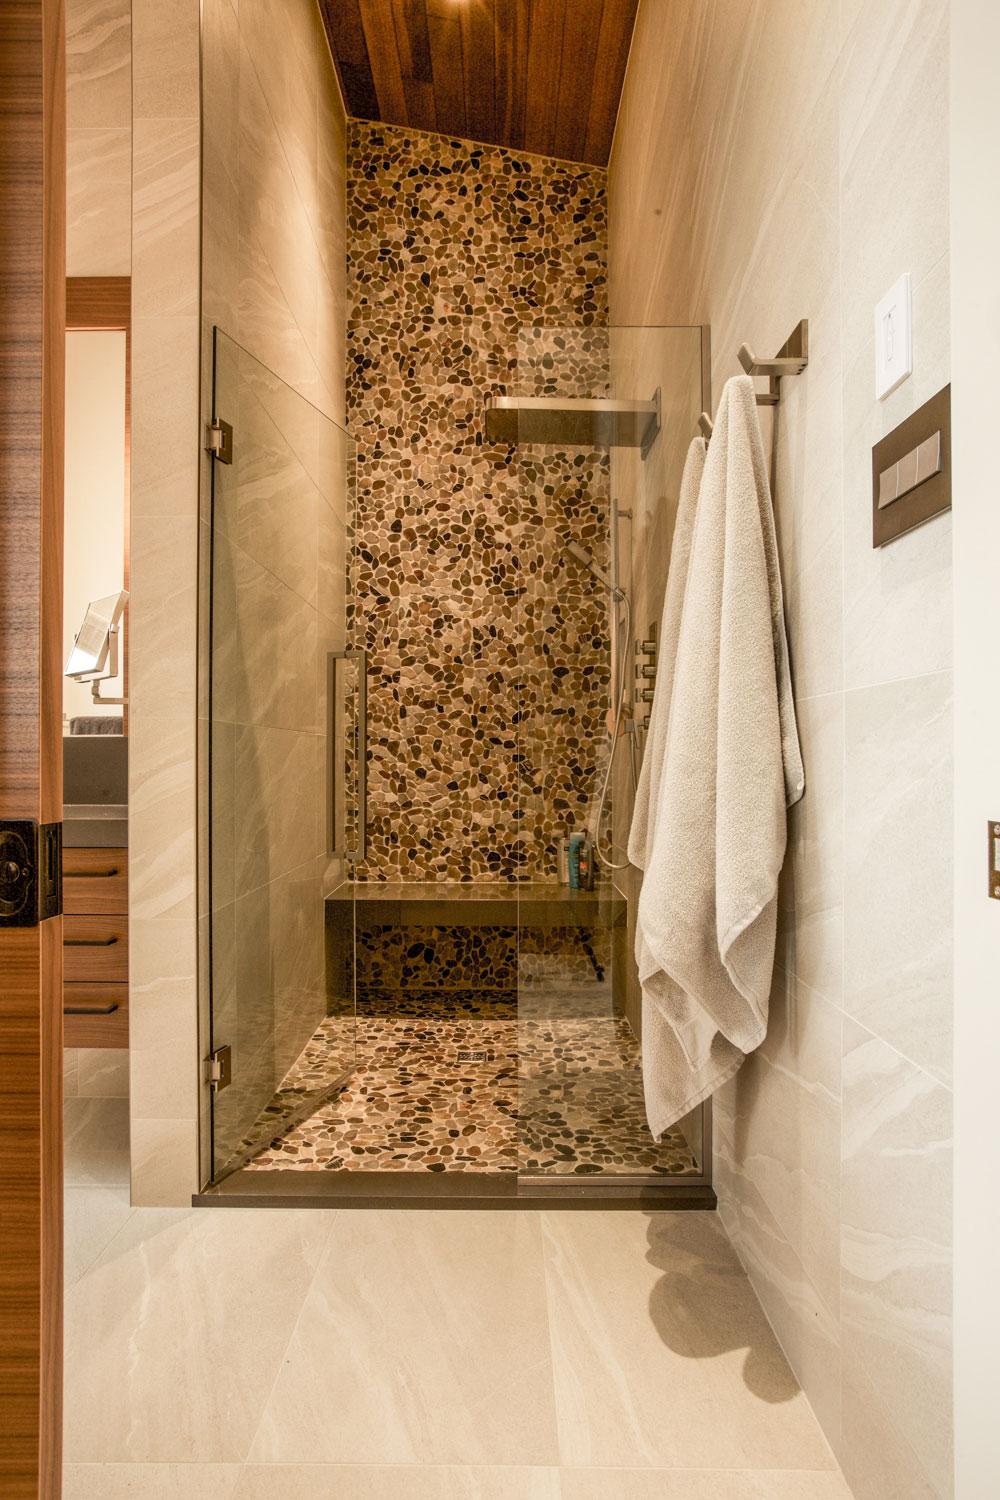 Unit 7 Architecture | Projects - Winnipeg Beach Summer Home - WALK IN SHOWER